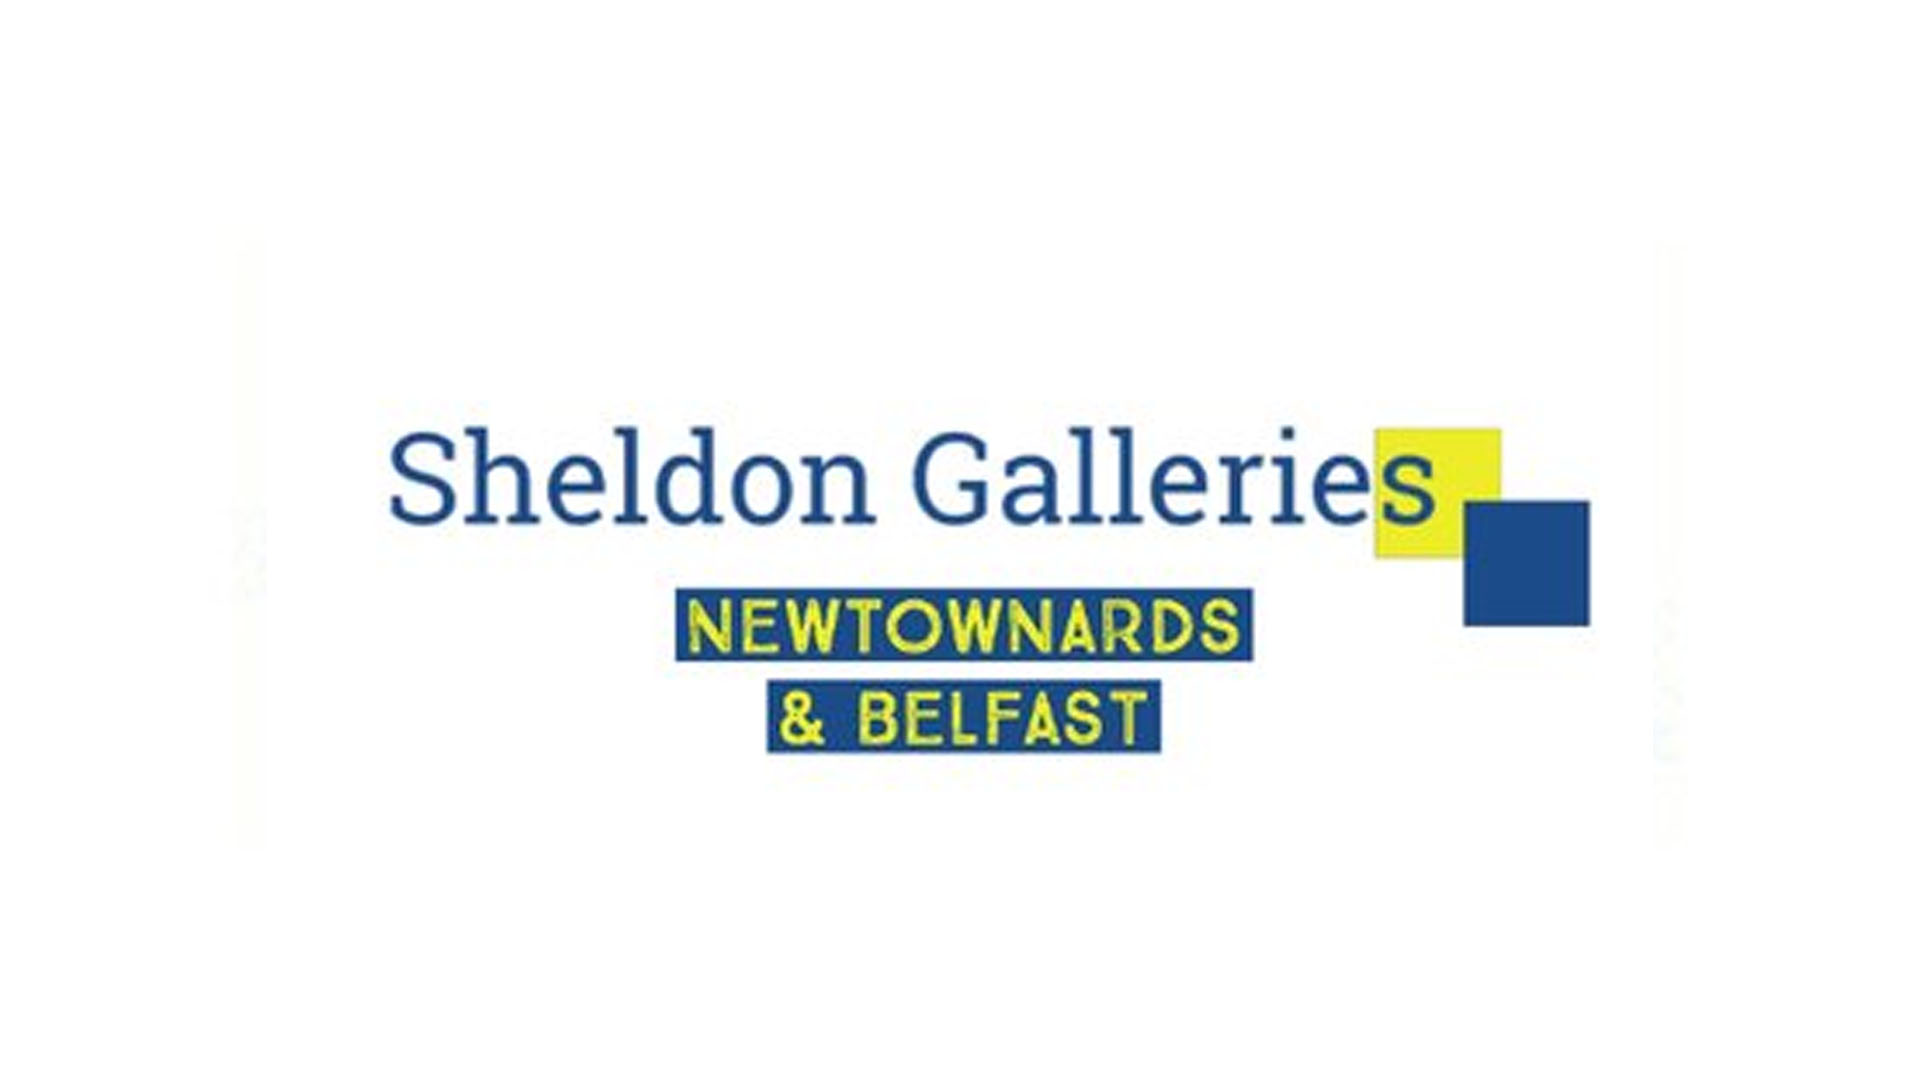 Sheldon Galleries is run by Heather Lavery and her husband Jim. For over 50 years, they have shared their passion for art and artwork framing across Belfast, Newtownards, all of Ireland and the UK. Sheldon Galleries has been manufacturing frames privately and commercially since its inception. We are proud to provide the perfect frame for your piece, while also supporting and encouraging the work of local artists. Visit our online store to view our high-quality prints and limited collector prints, which can be shipped throughout Ireland.